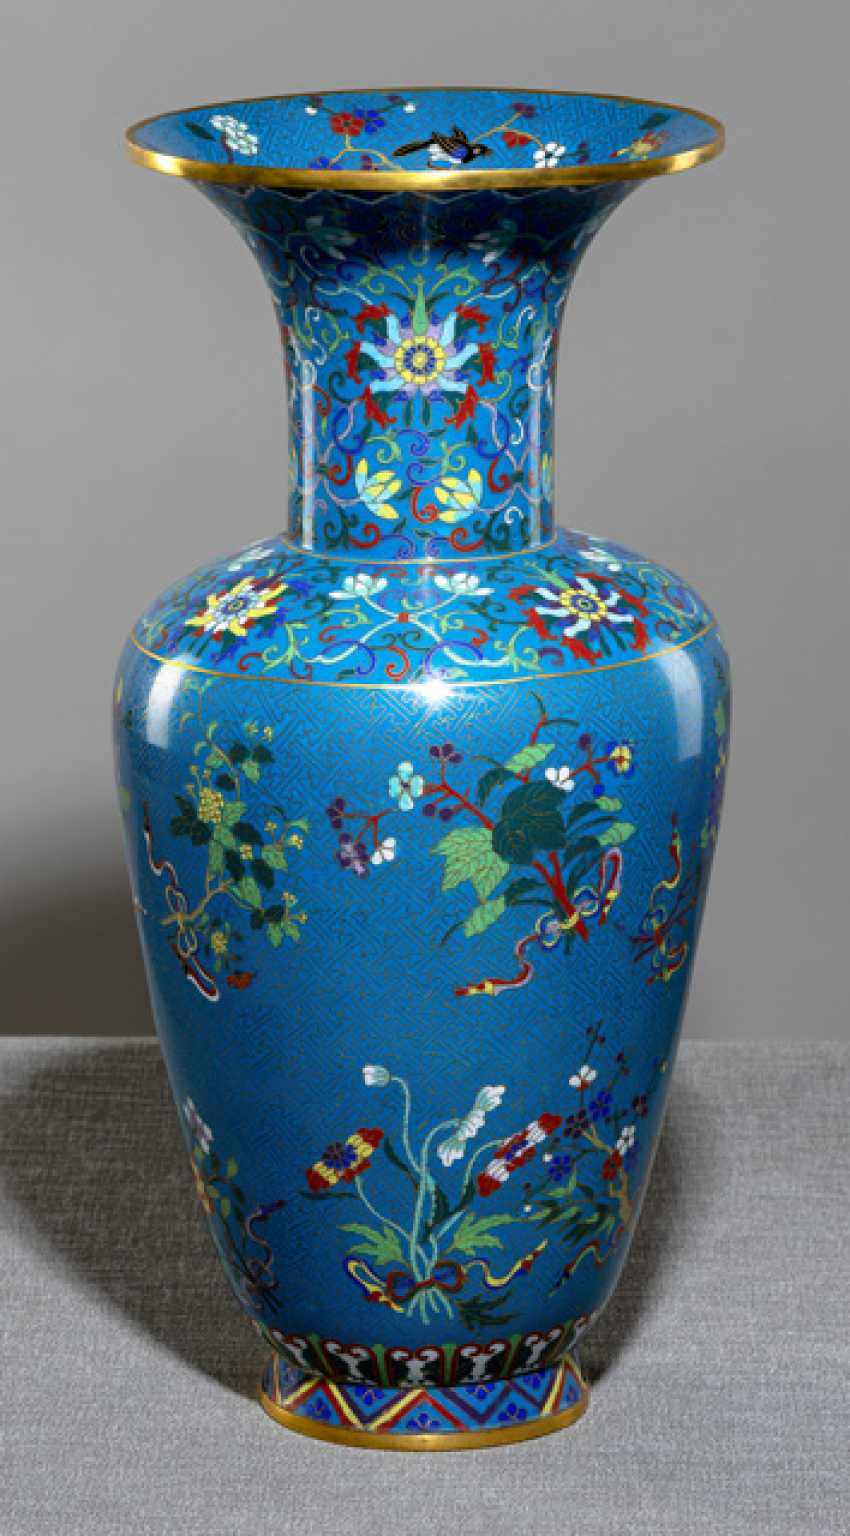 Large Cloisonné Vase with flowers, branches, and Lotus in meander-lattice - photo 1